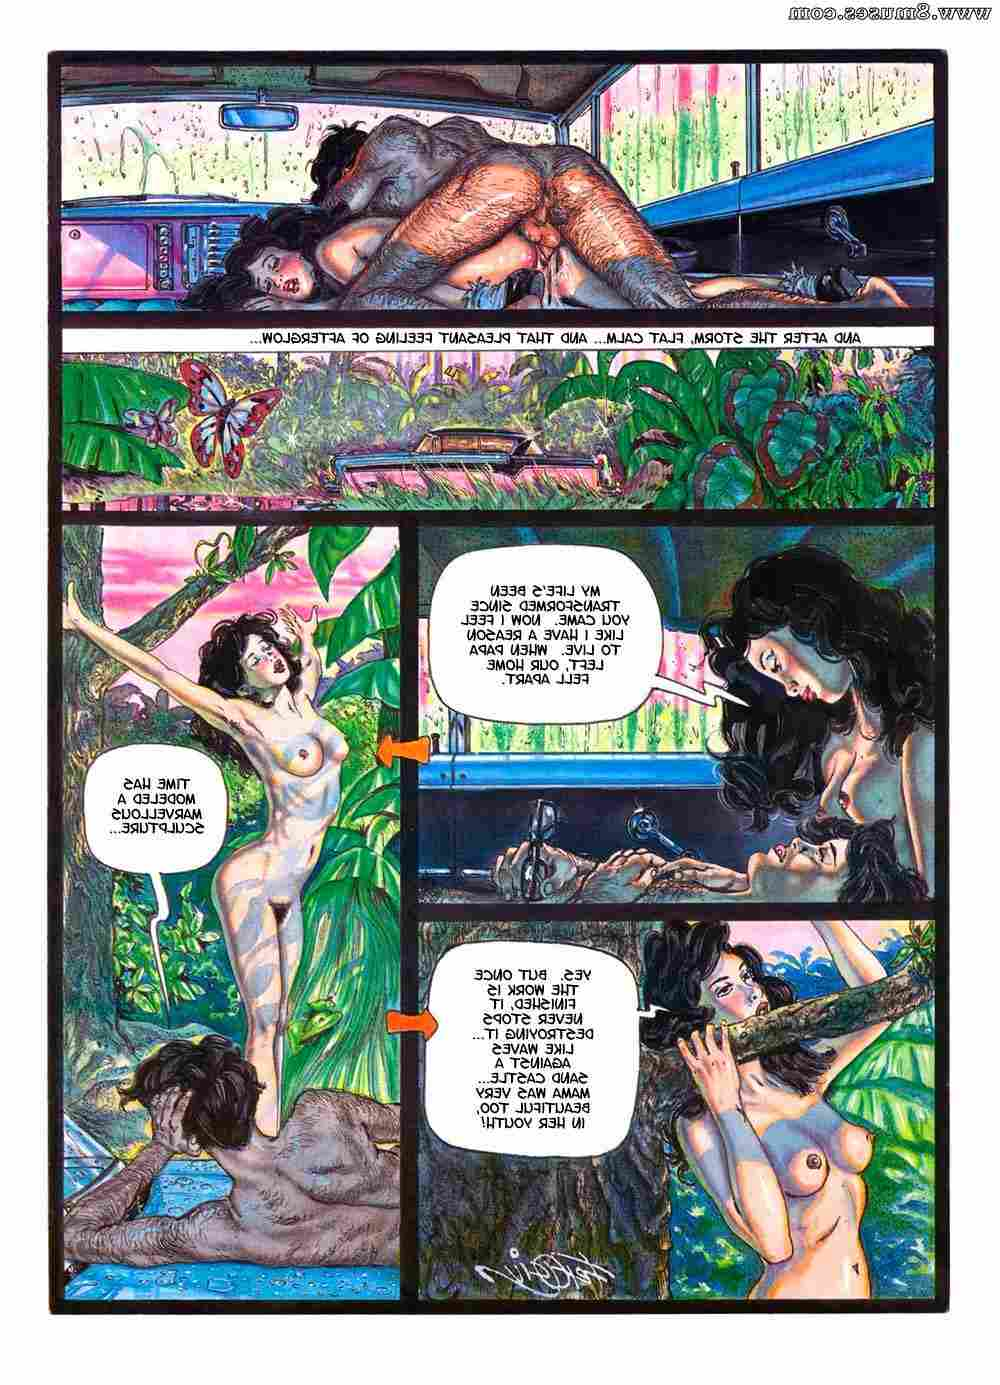 Ferocius-Comics/Forbidden-Flower Forbidden_Flower__8muses_-_Sex_and_Porn_Comics_30.jpg